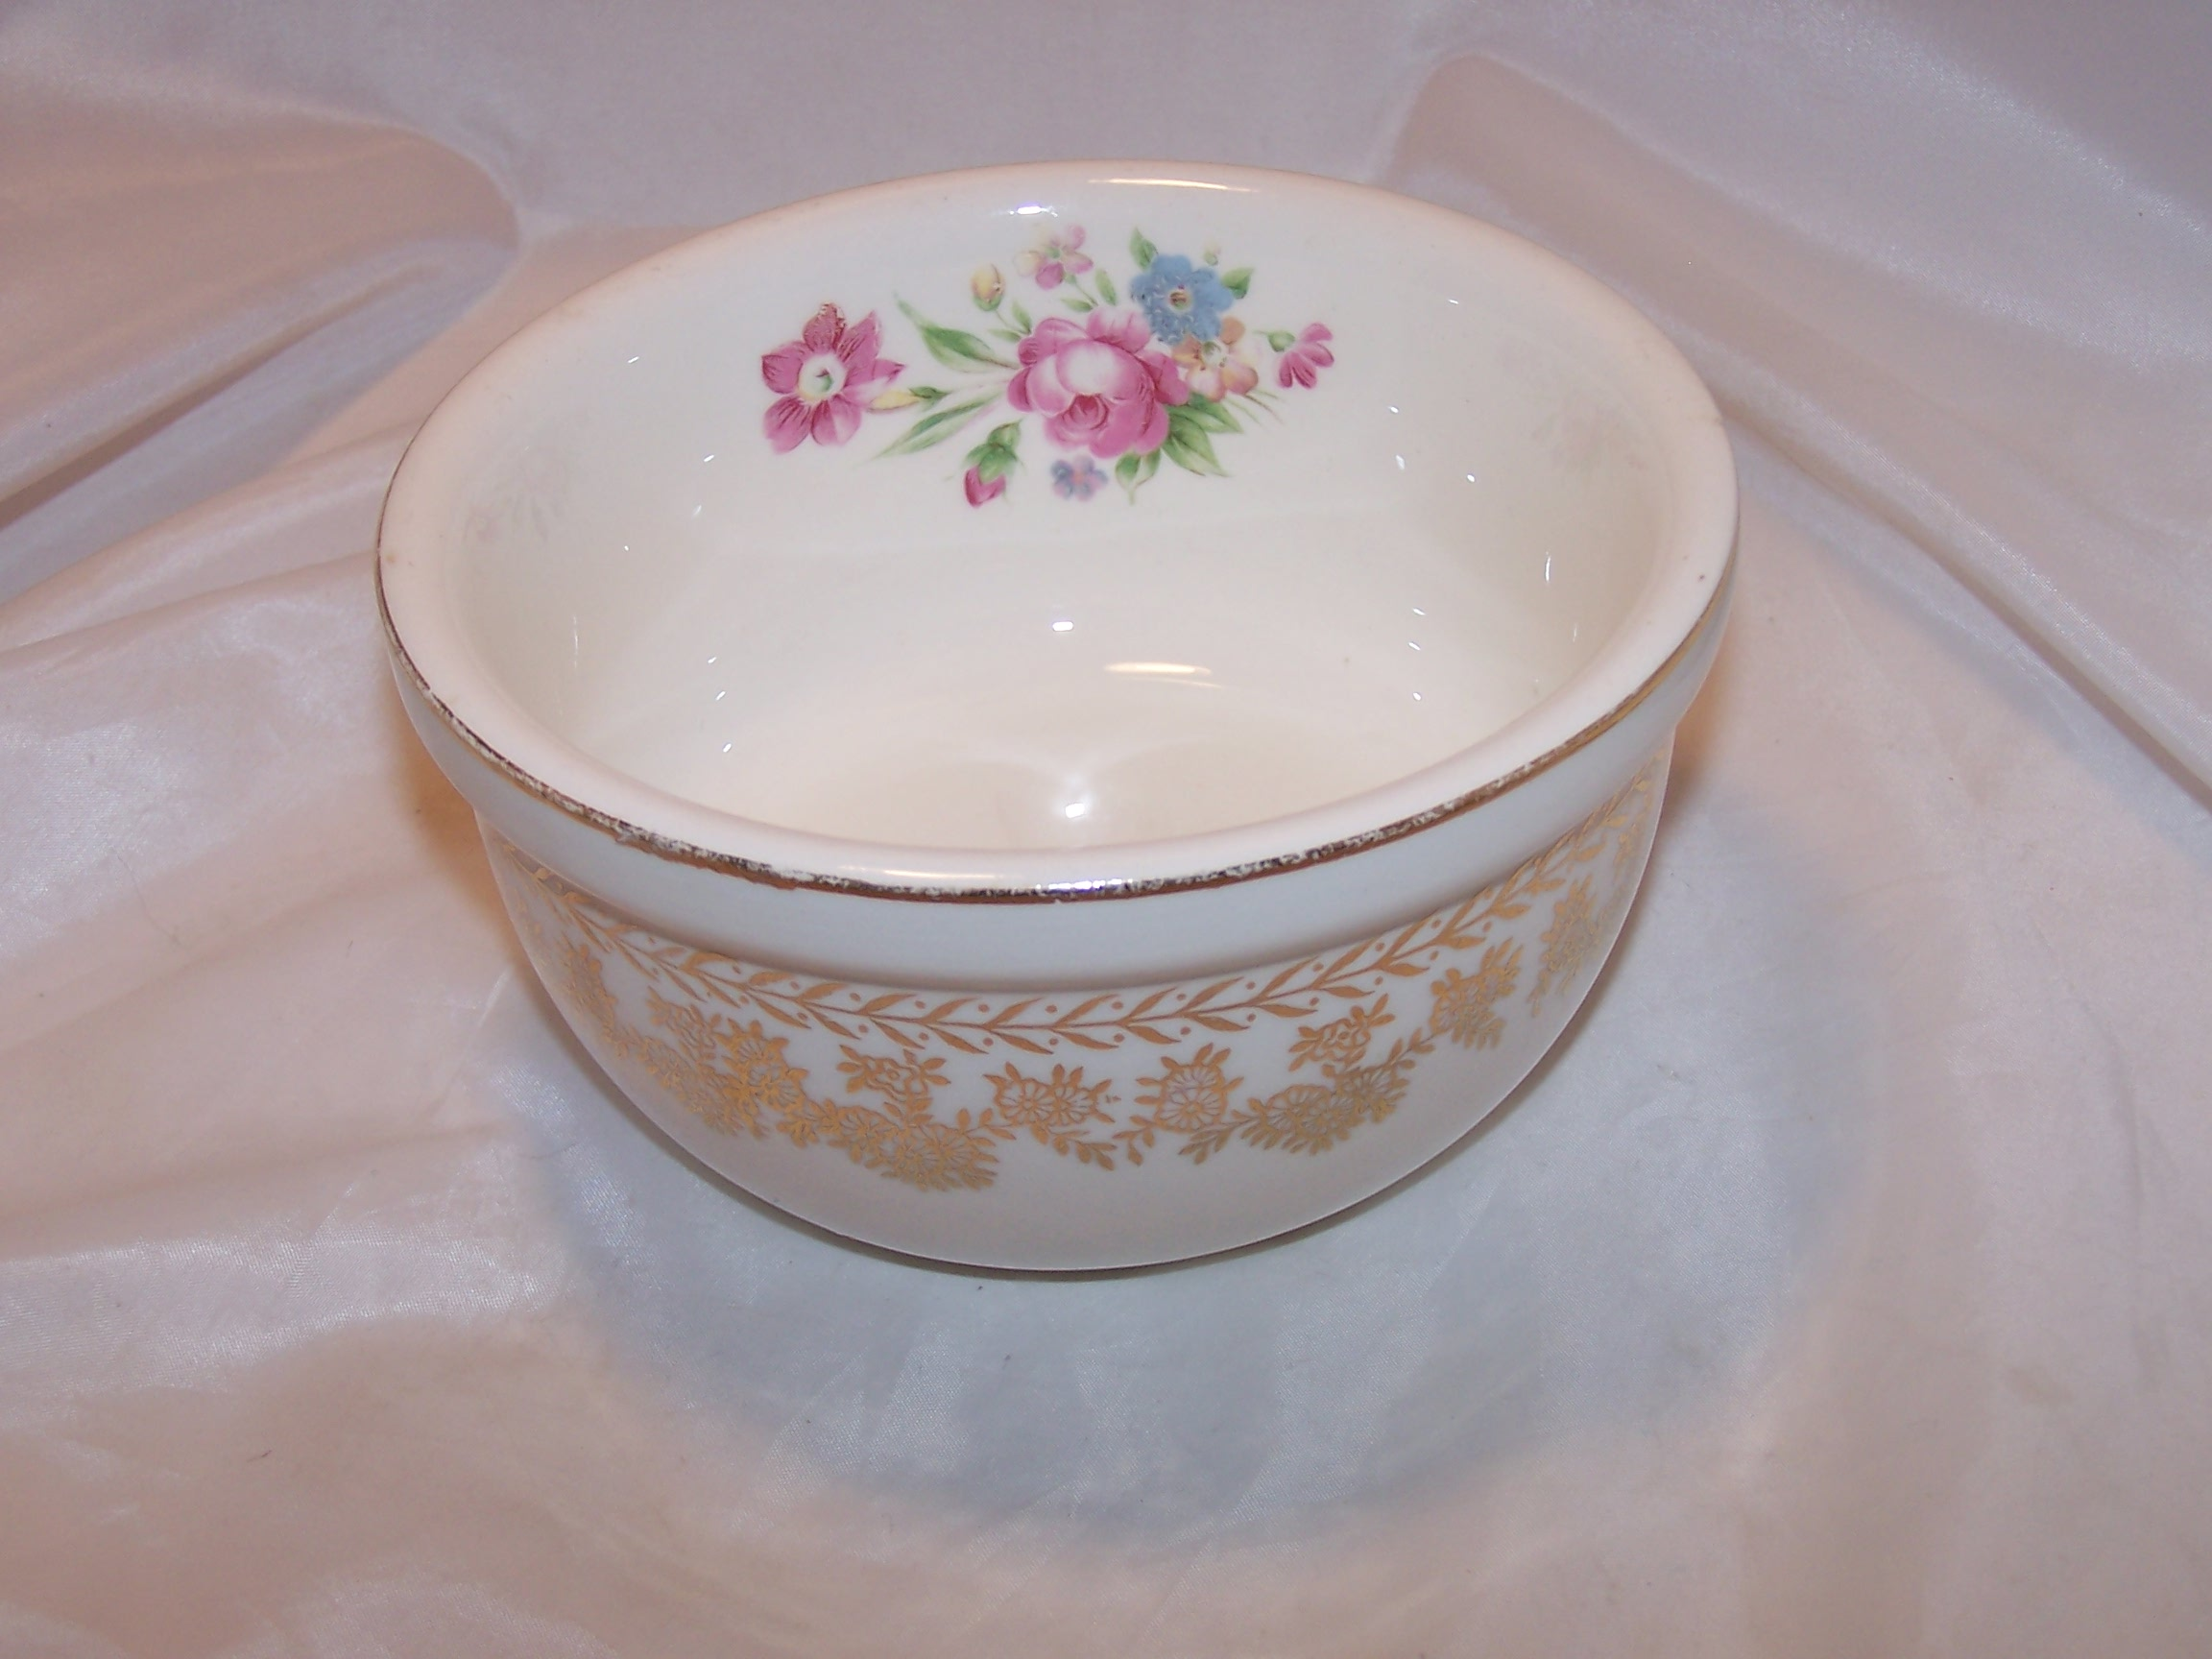 Stetson Mixing Bowl, Gold and Floral Pattern, Ovenware